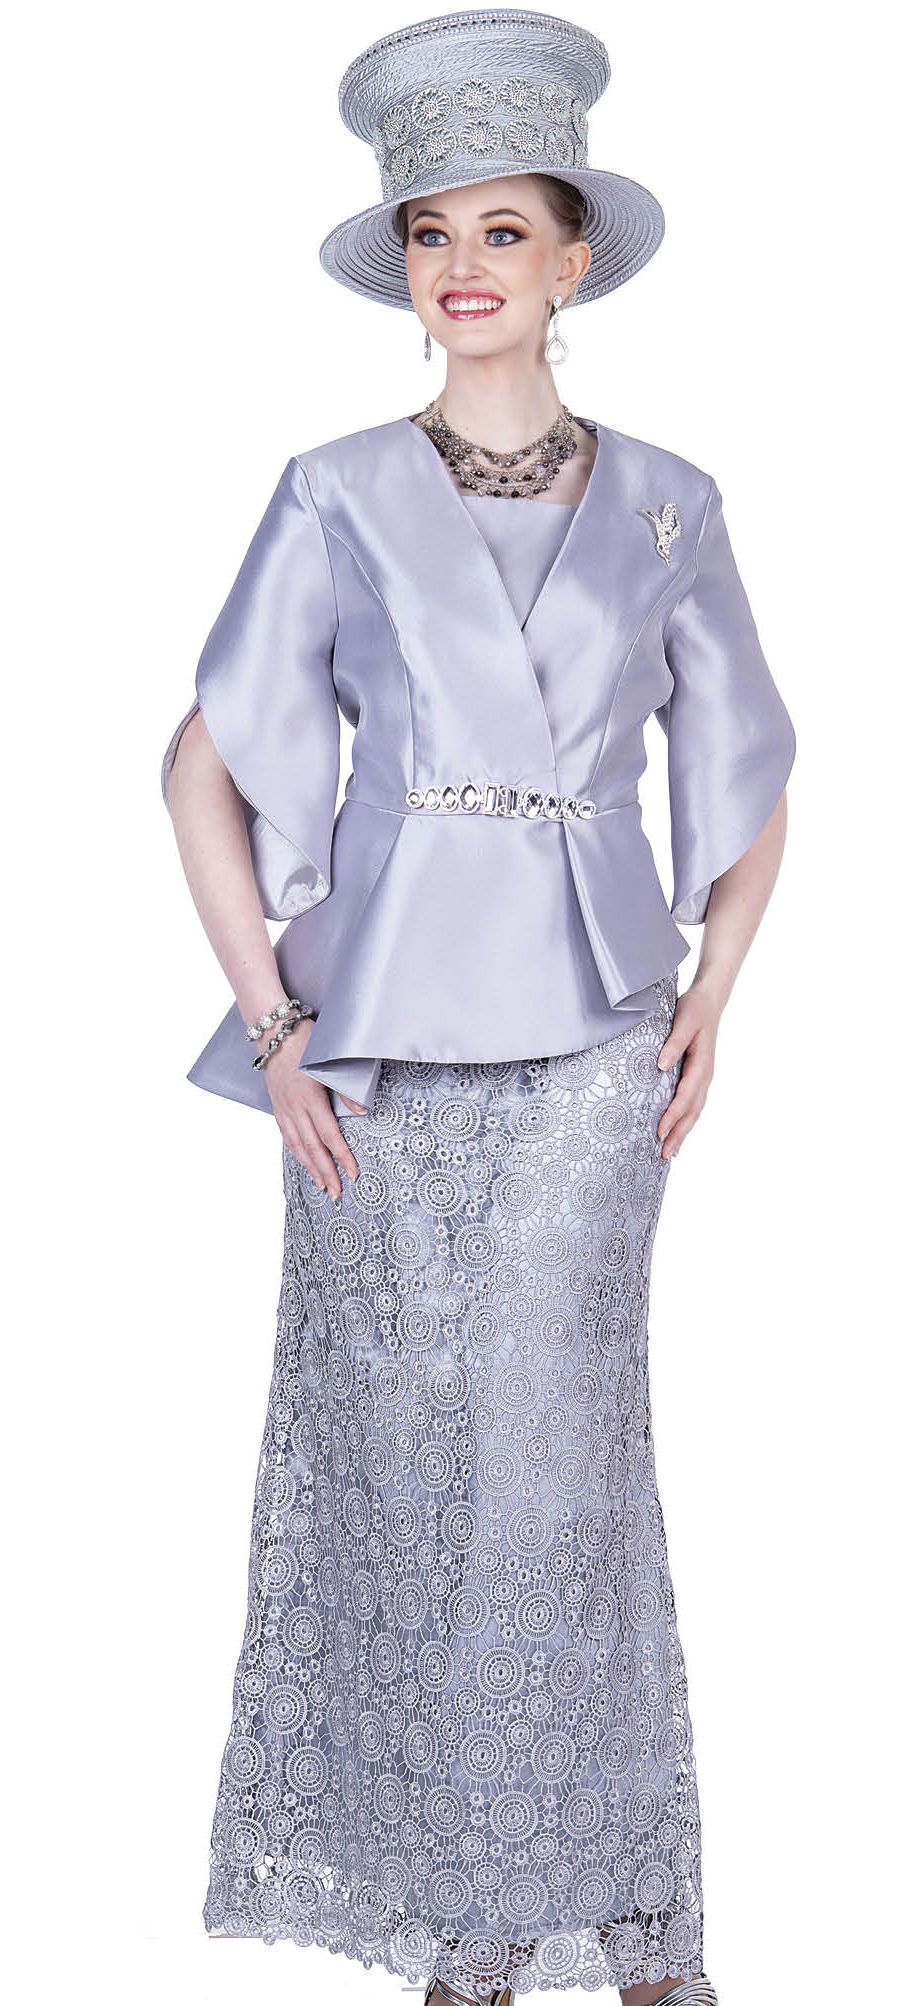 Champagne Italy 5207 - Church Suits For Less